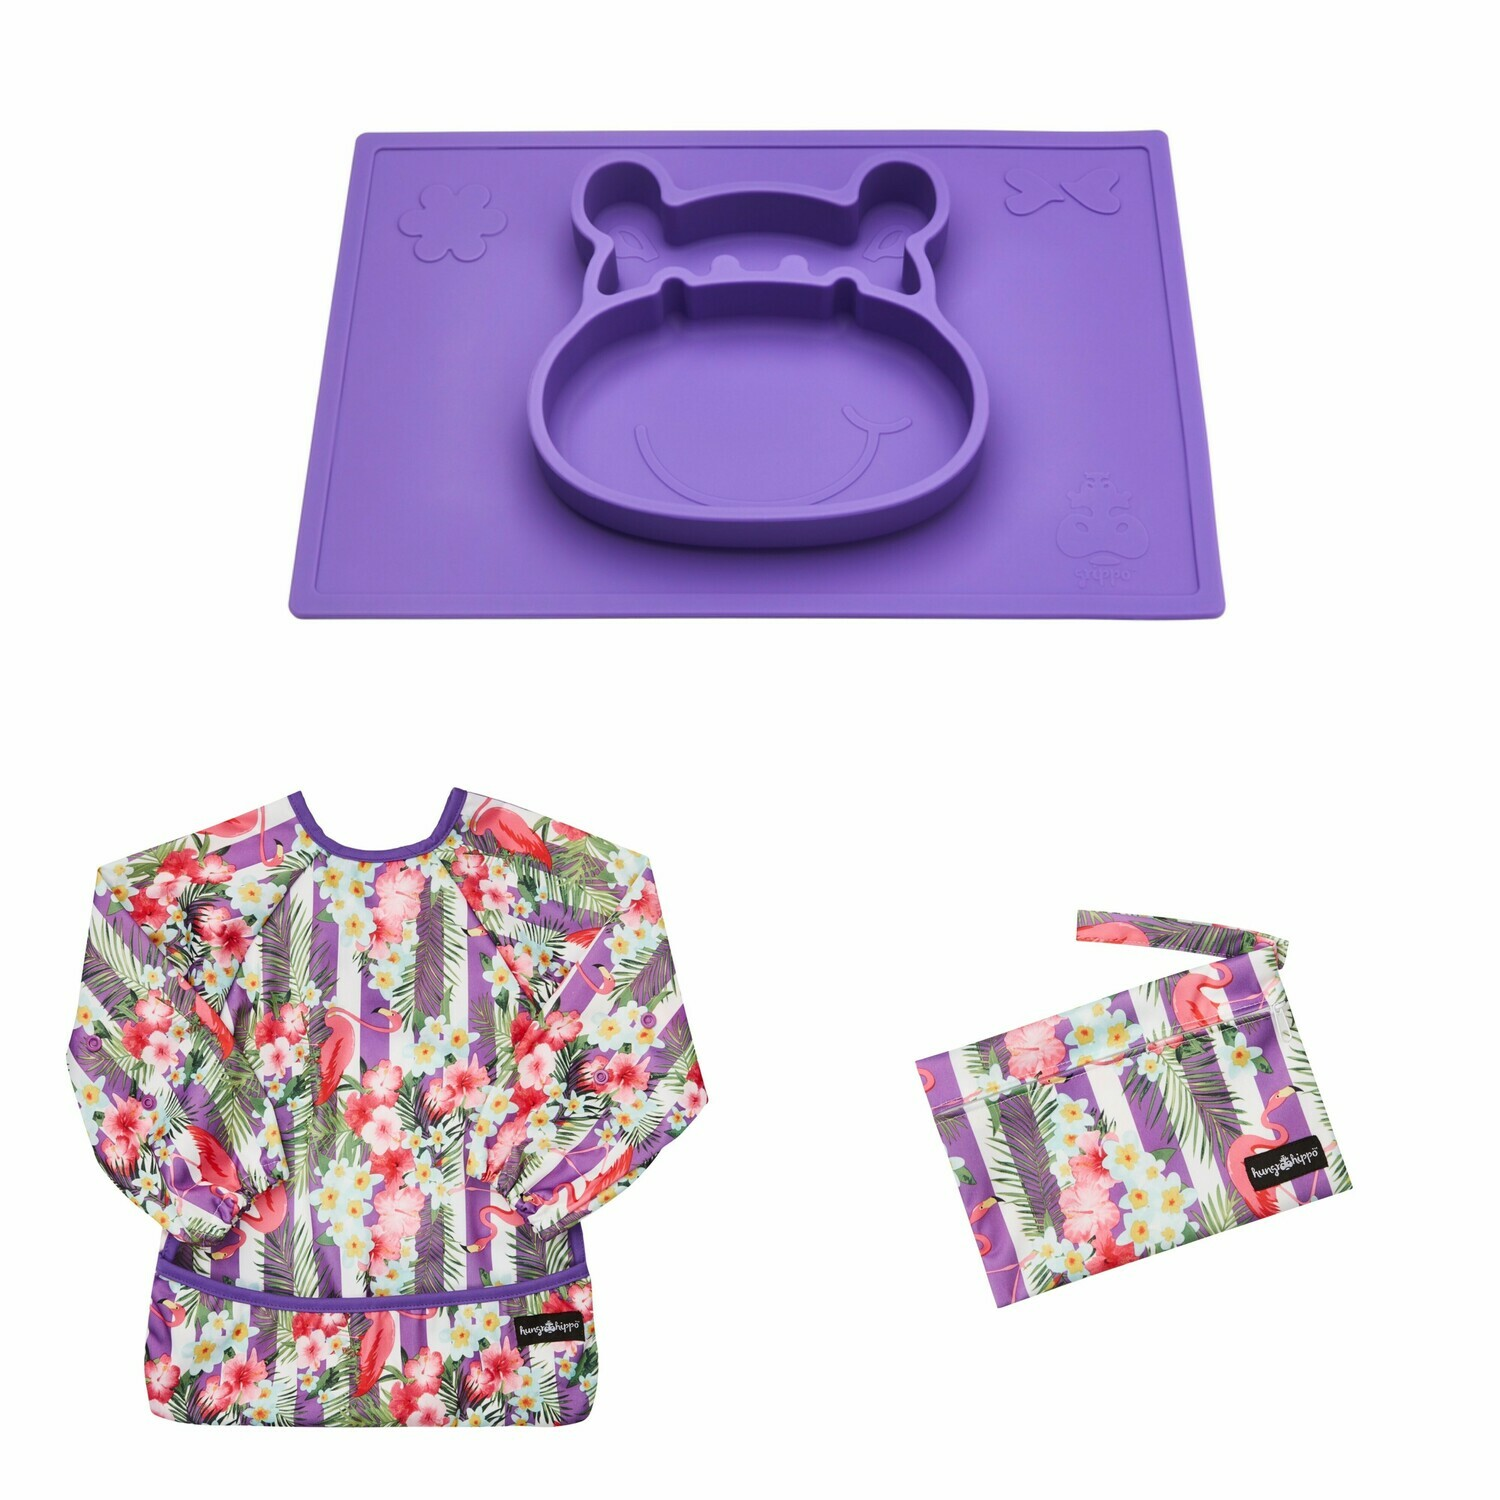 Weaning and Messy Play Bundle in Plum